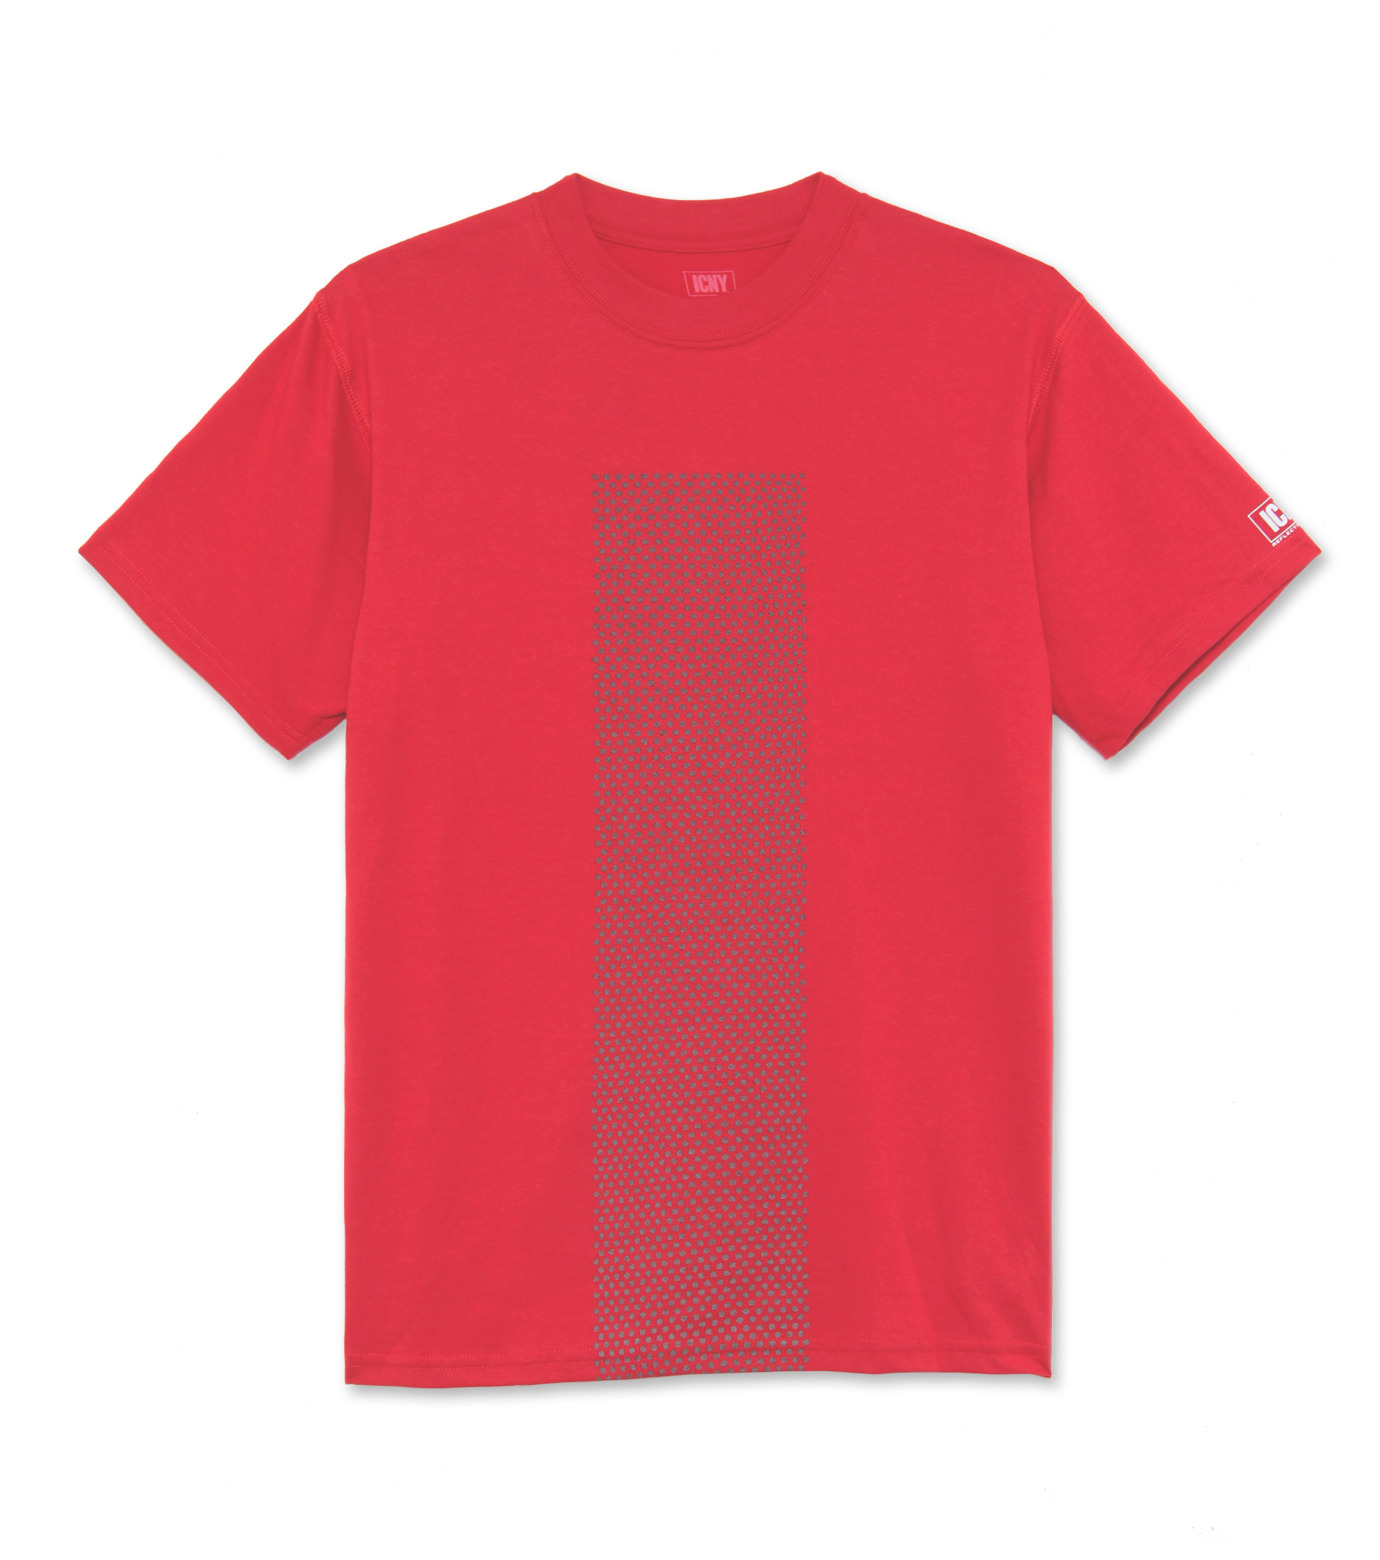 ICNY(アイ・シー・エヌ・ワイ)のRun Over Tee-RED(T-SHIRTS/T-SHIRTS)-RNOT-62 拡大詳細画像1